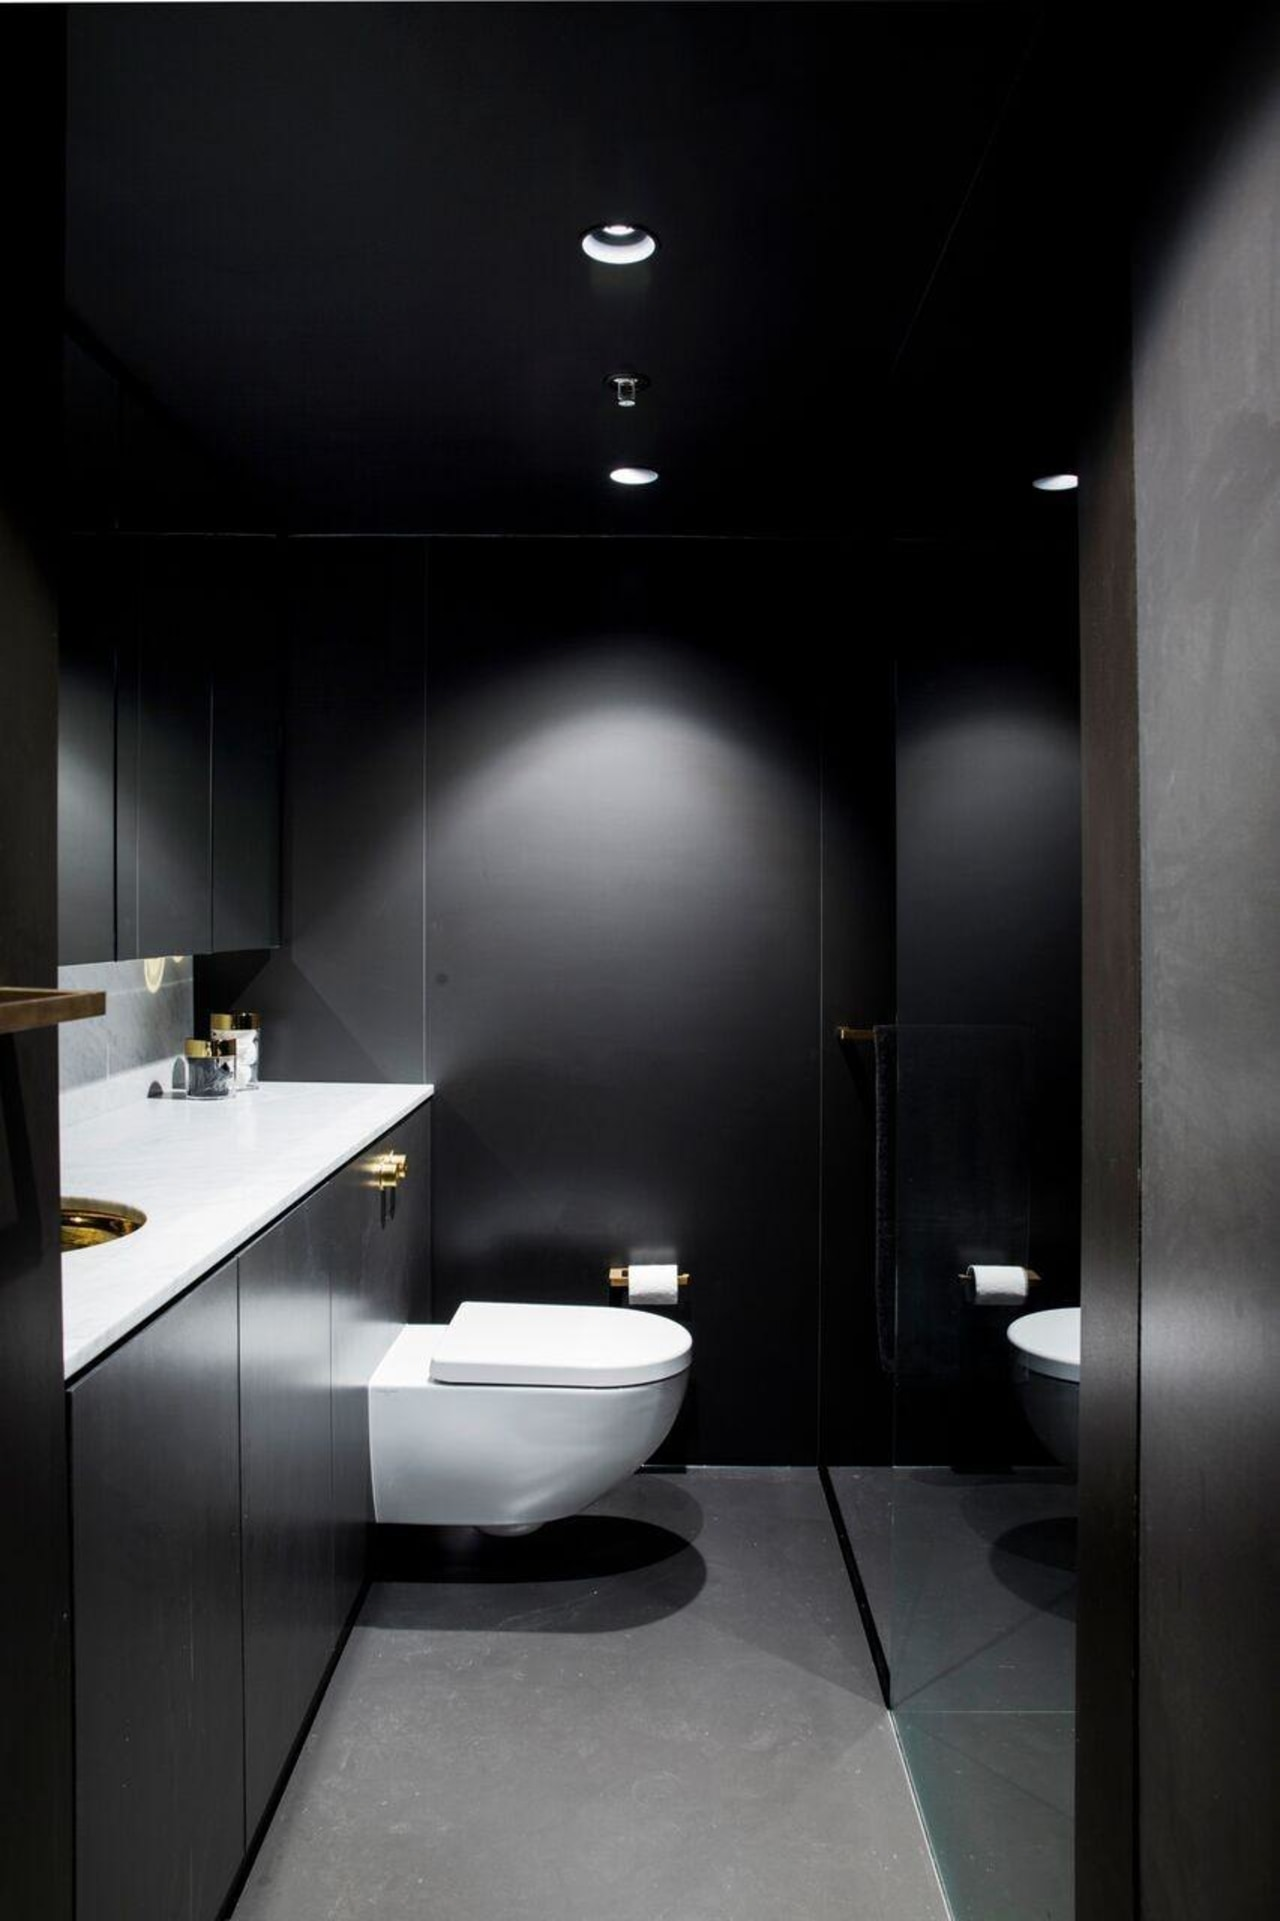 Architect: Architect Prinea architecture, bathroom, bidet, ceiling, daylighting, floor, interior design, plumbing fixture, product design, room, sink, toilet, black